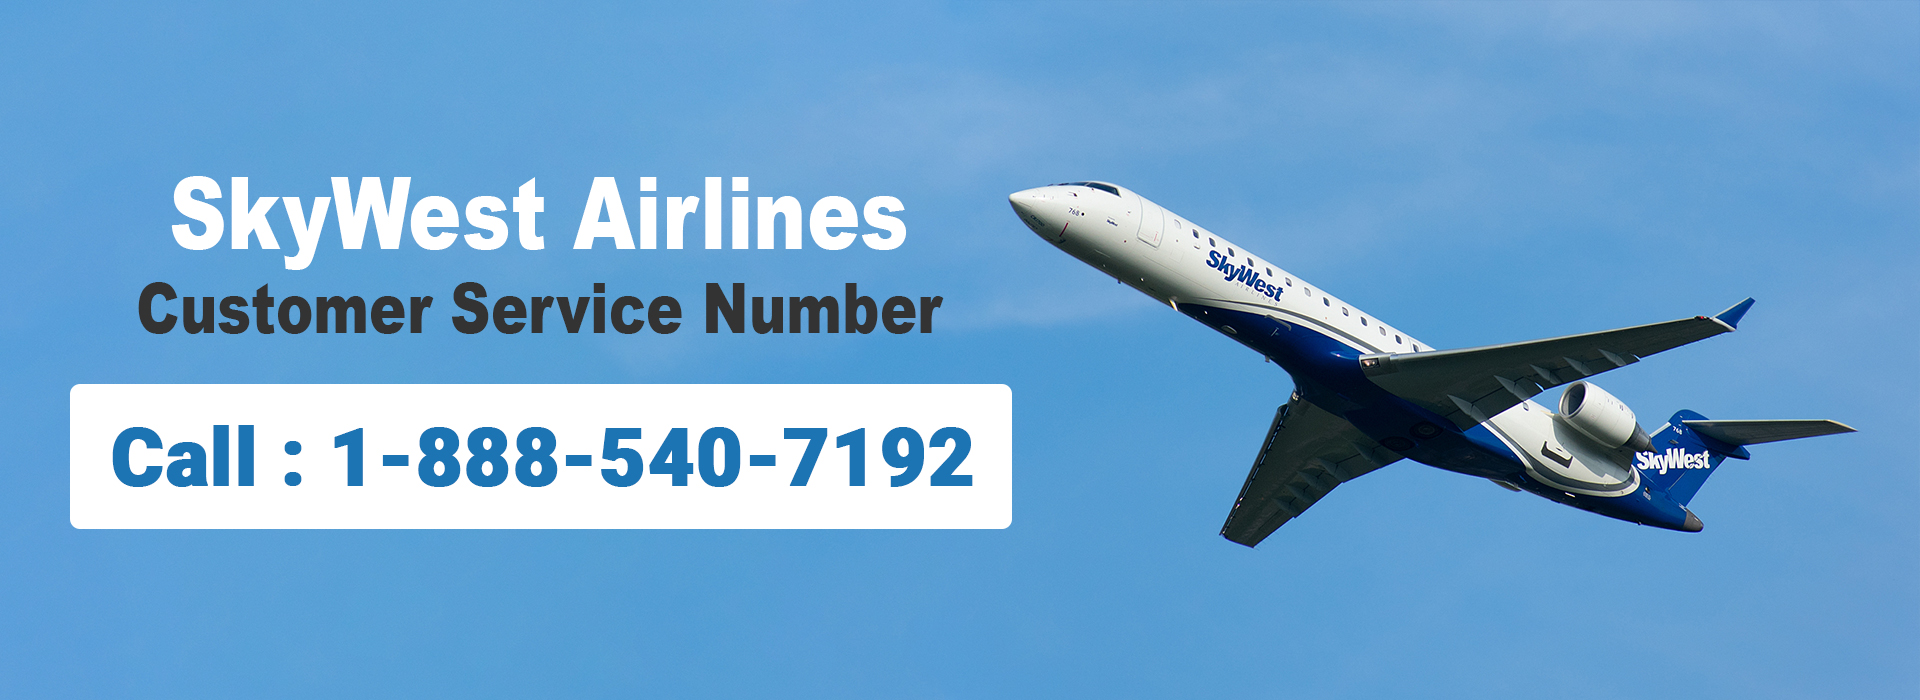 SkyWest Airlines Customer Service 1-888-540-7192